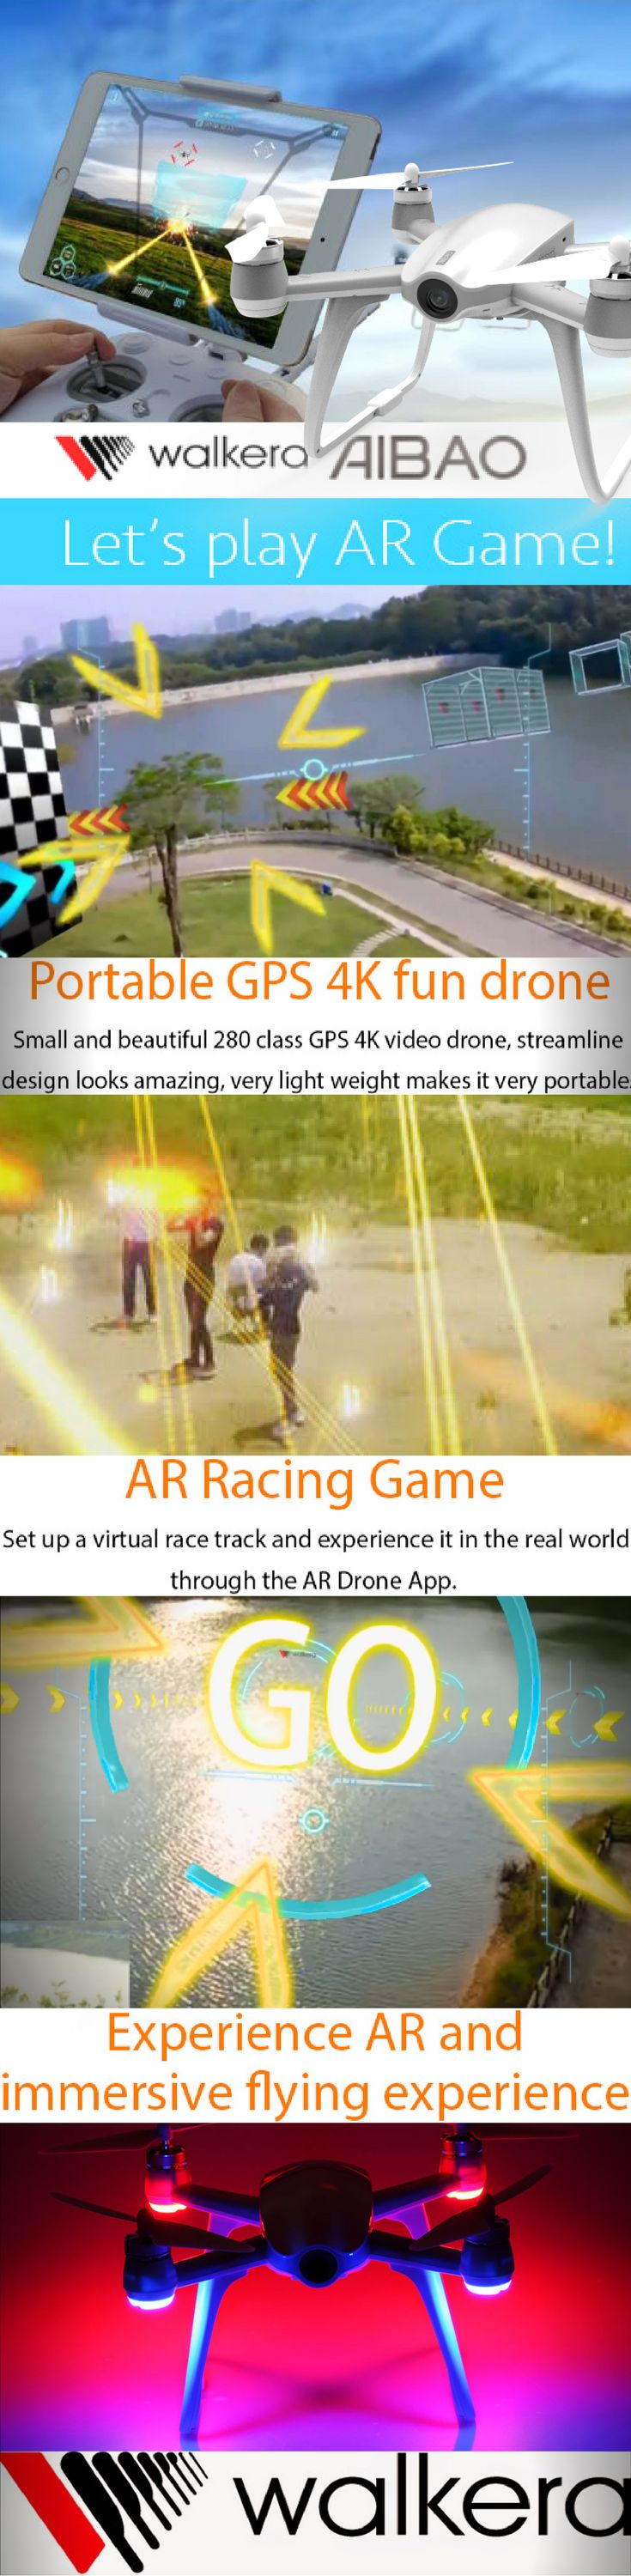 Walkera Aibao - not just a video drone, it's a Gaming drone as well!! Fly it and play Augmented Reality game on Aibao AR App! The Walkera Aibao is a unique UAV, it's a great 4K video GPS drone and a one of a kind Gaming drone two-in-one.